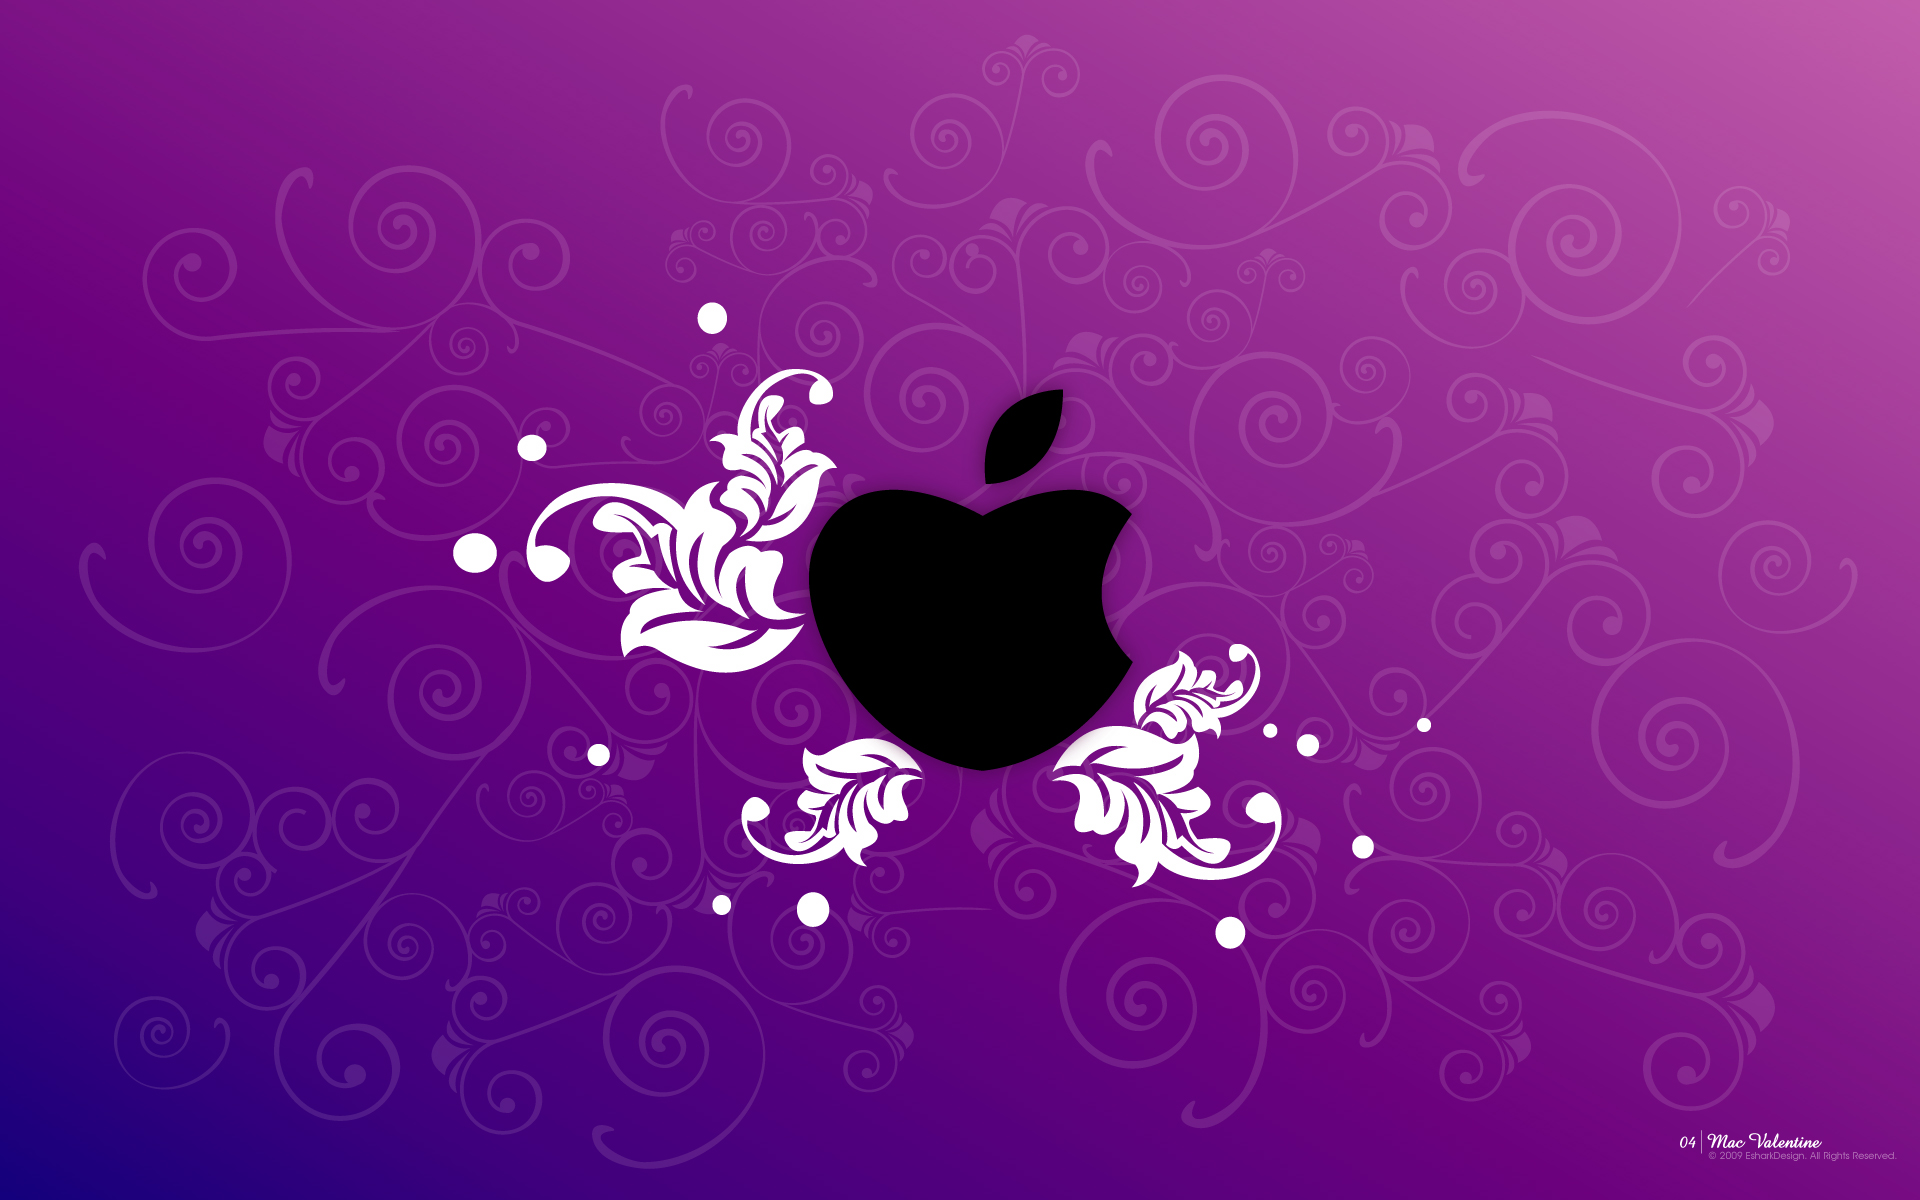 wallpapers 4k-hd Apple-alegorias.es (22)